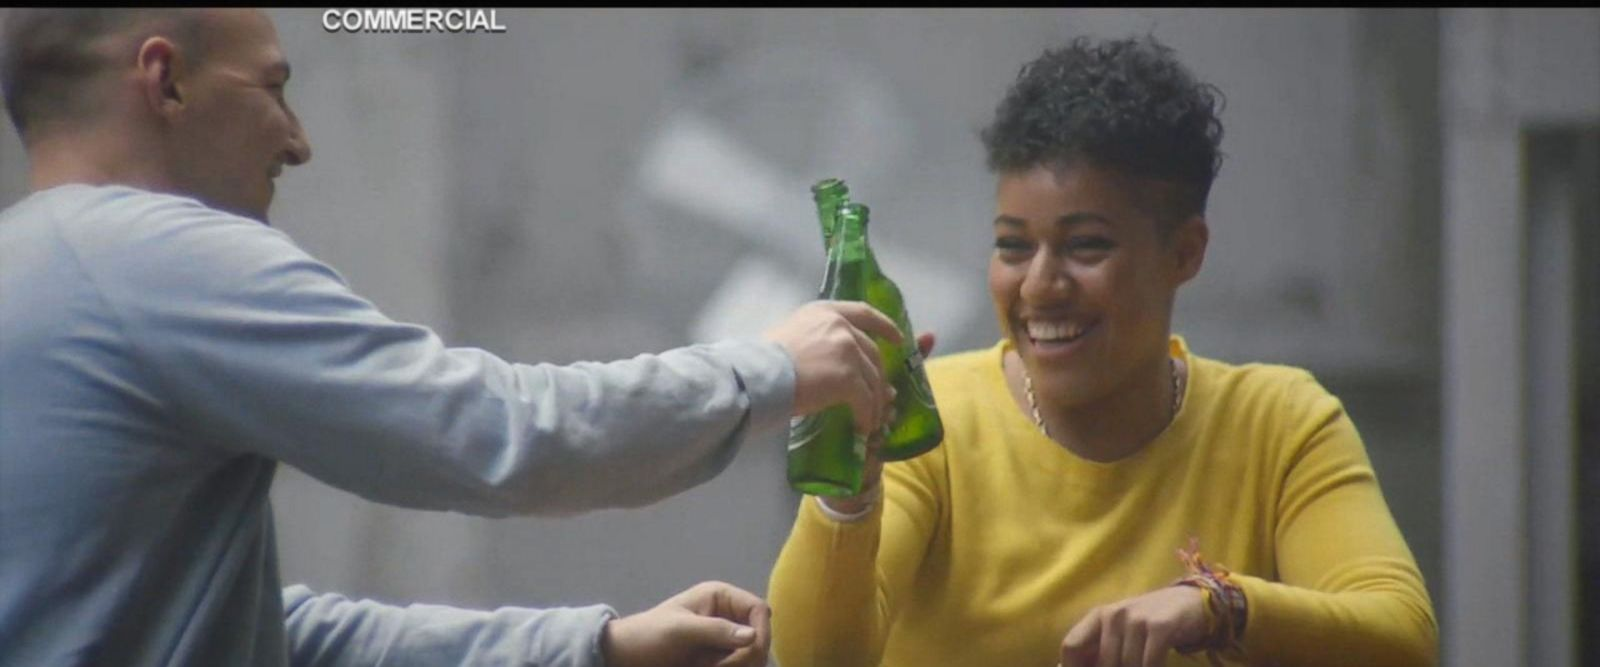 VIDEO: Heineken releases politically-charged commercial